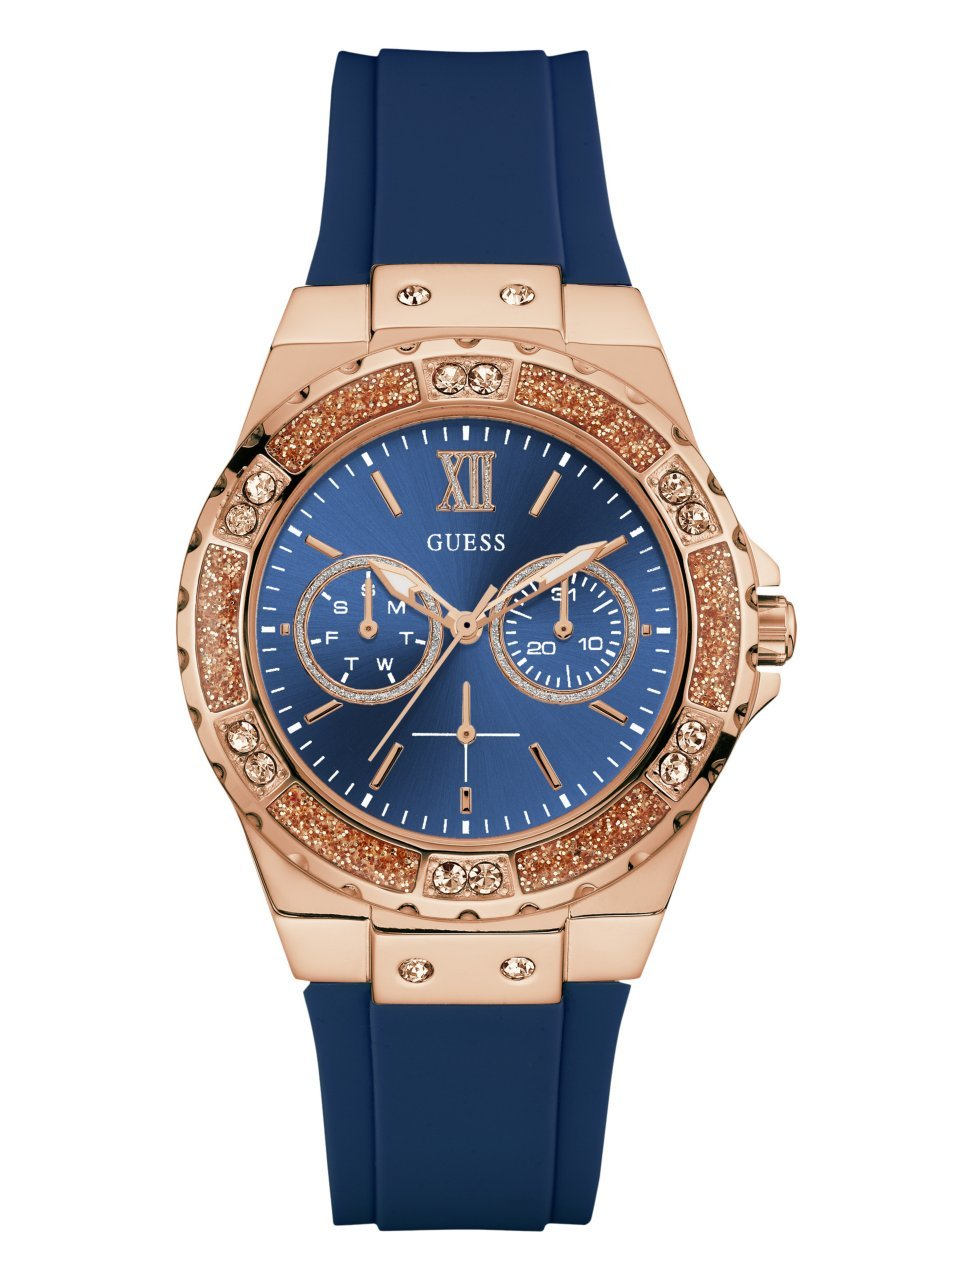 GUESS Women's Stainless Steel Silicone Crystal Accented Watch, Color: Blue/Rose Gold-Tone (Model: U1053L1)